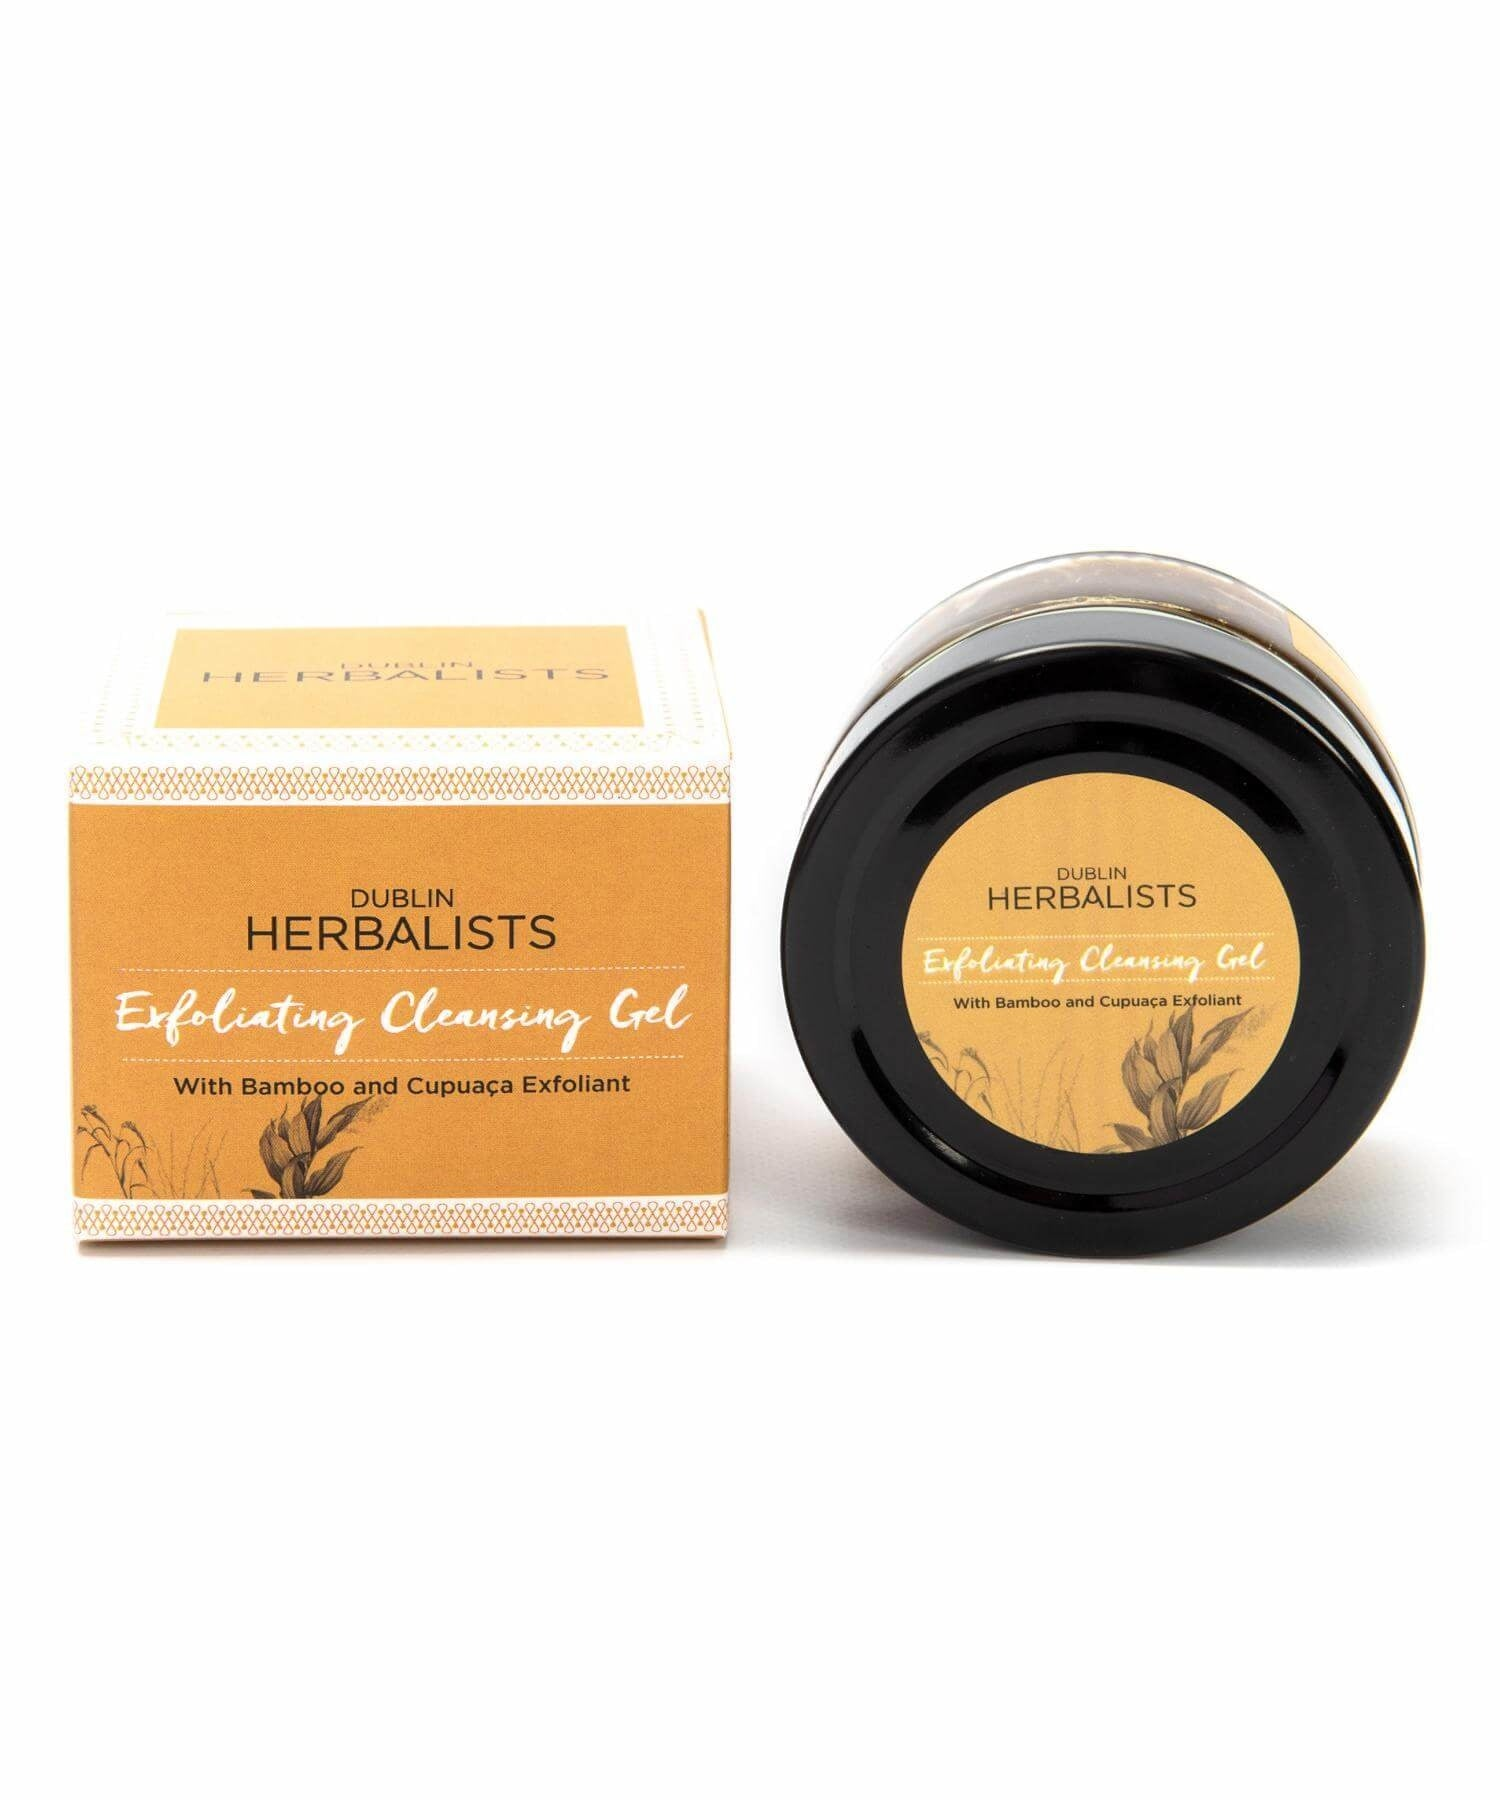 Exfoliating Cleansing Gel - [Dublin Herbalists] - Skincare & Beauty - Irish Gifts